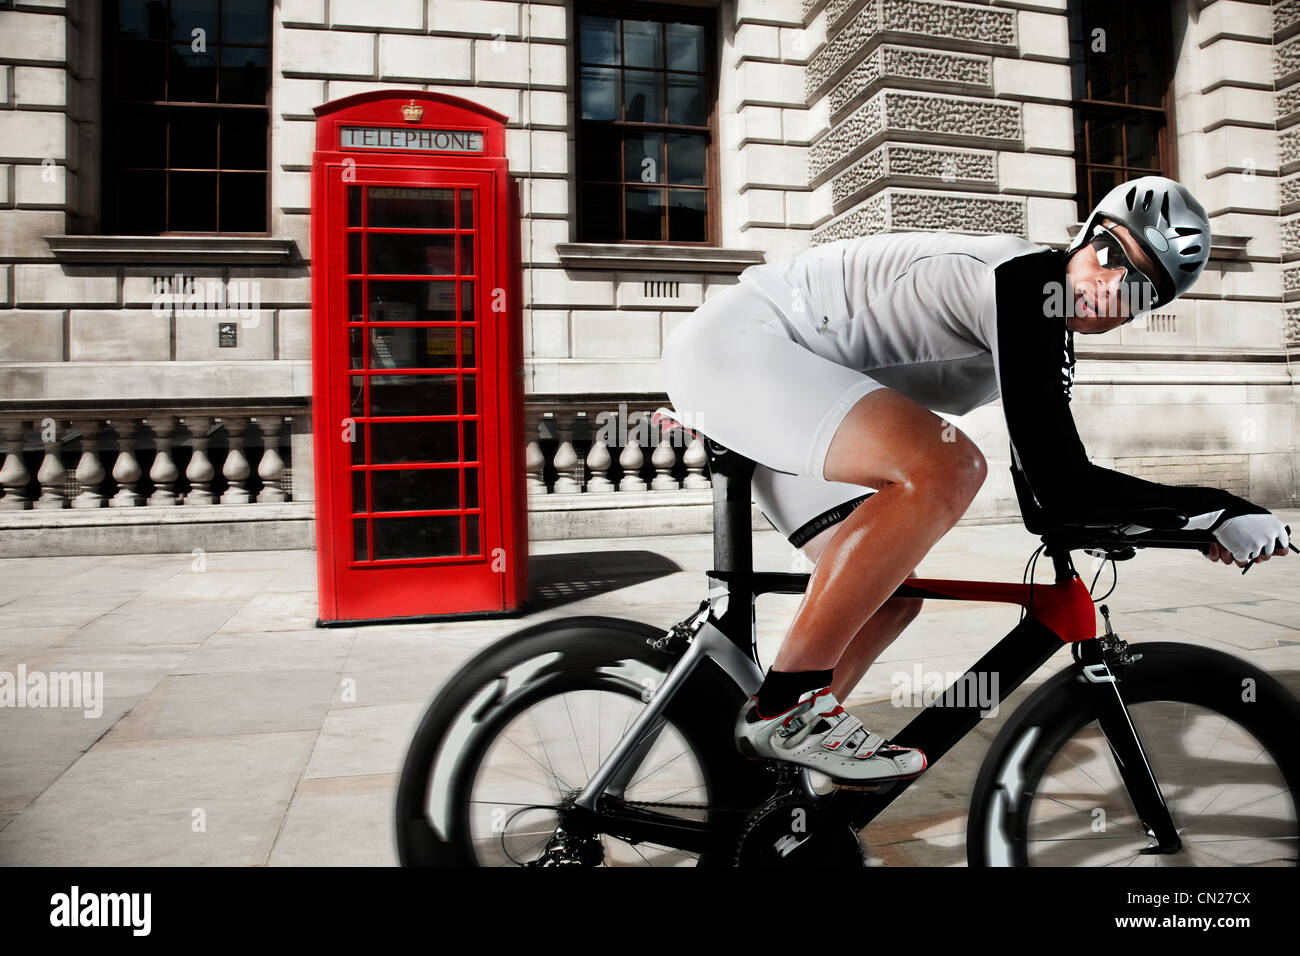 Cyclist cycling past red telephone box - Stock Image